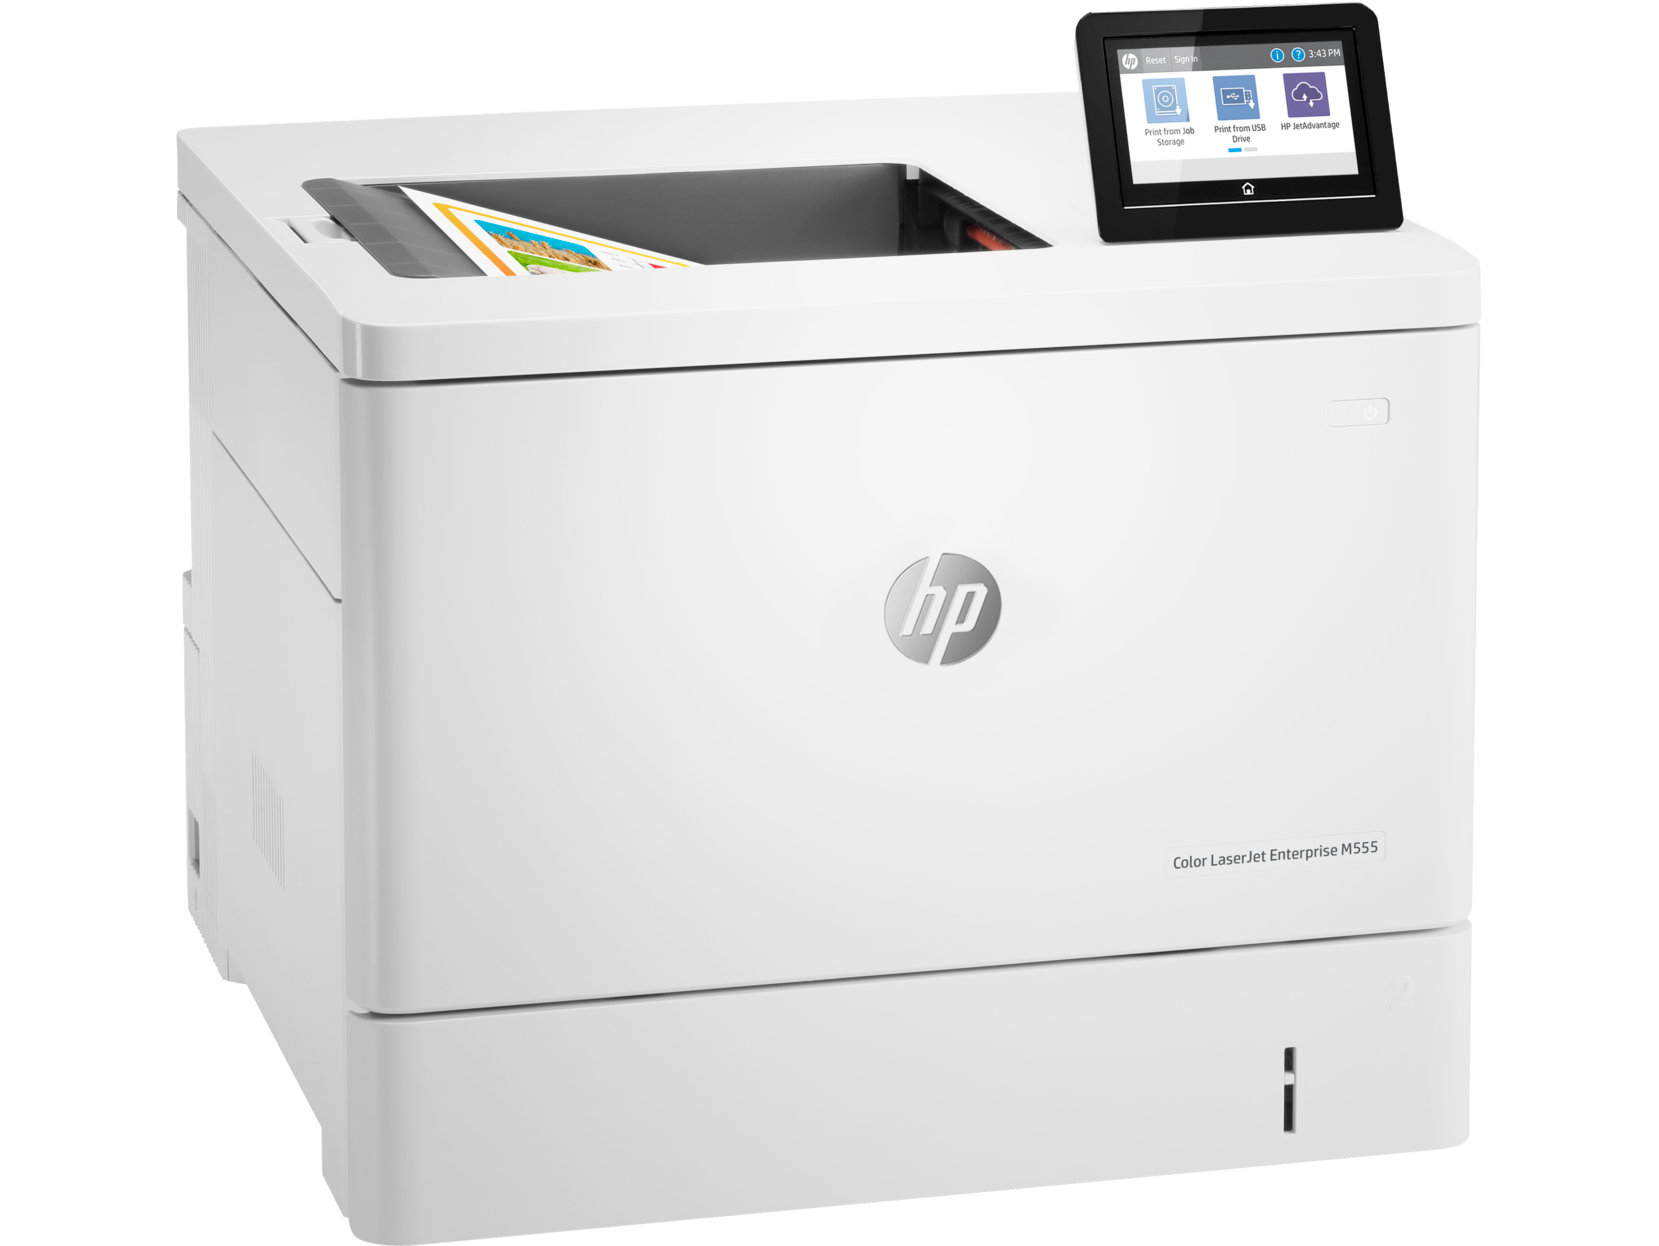 HP Color LaserJet Enterprise M555dn Color Laser Printer, Demo (7ZU78A)